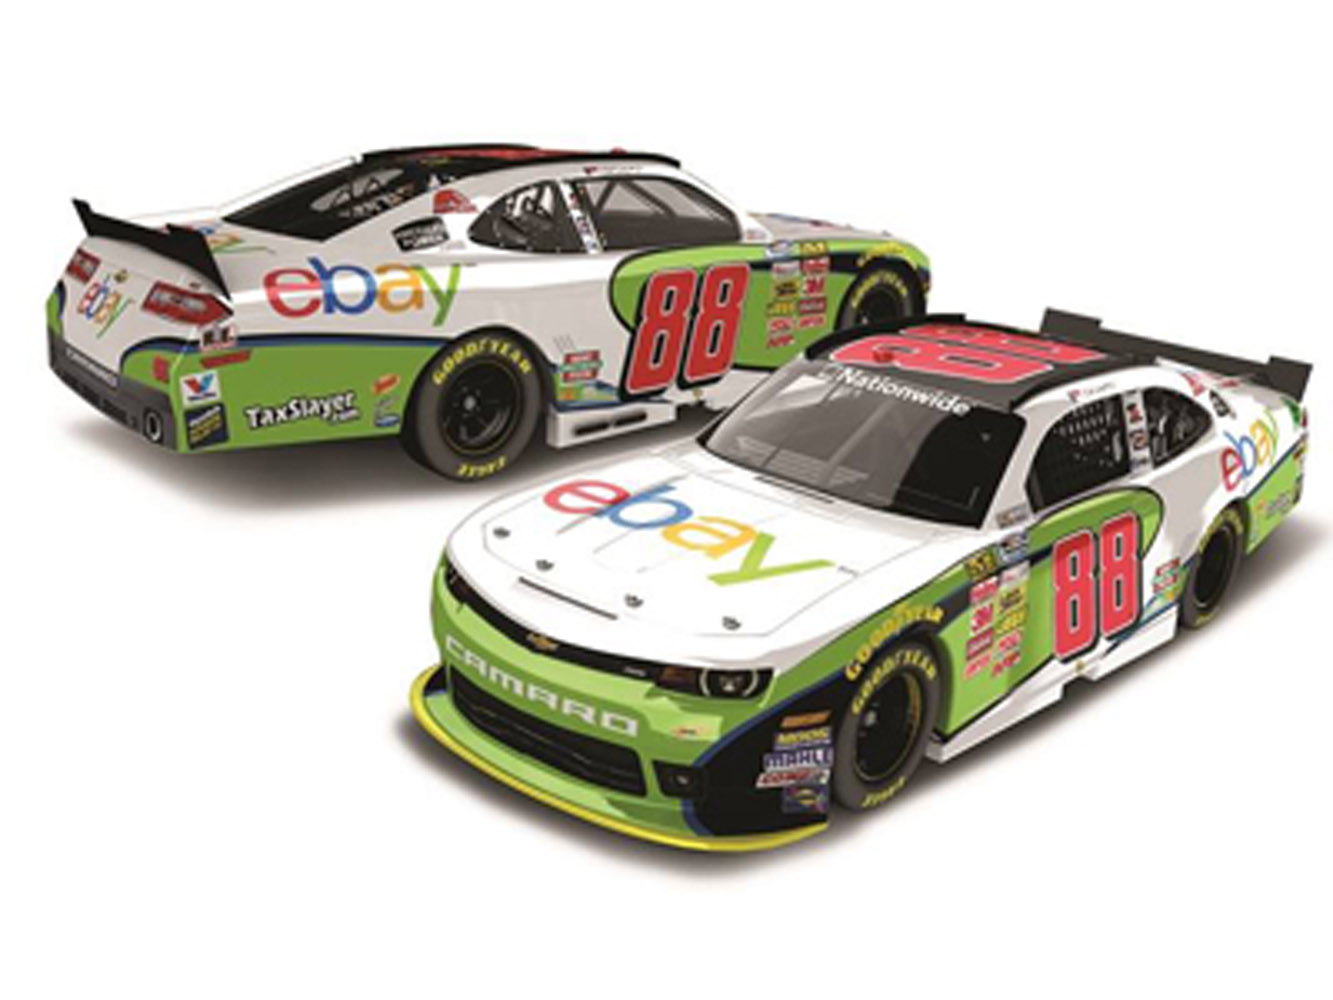 2014 Dale Earnhardt Jr #88 Ebay 1/64 Diecast Car